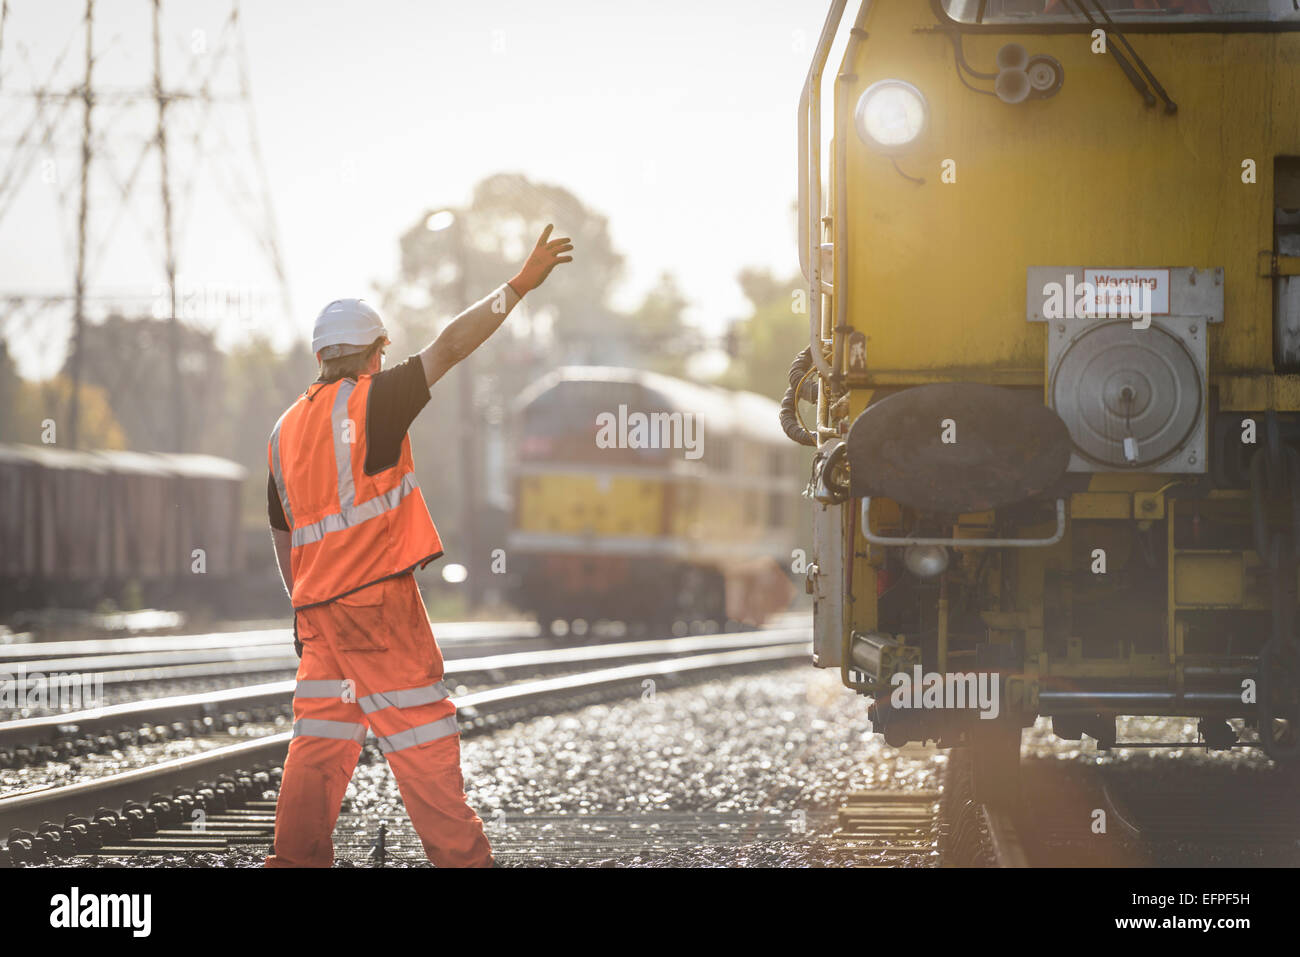 Maintenance worker signalling to train on railway - Stock Image